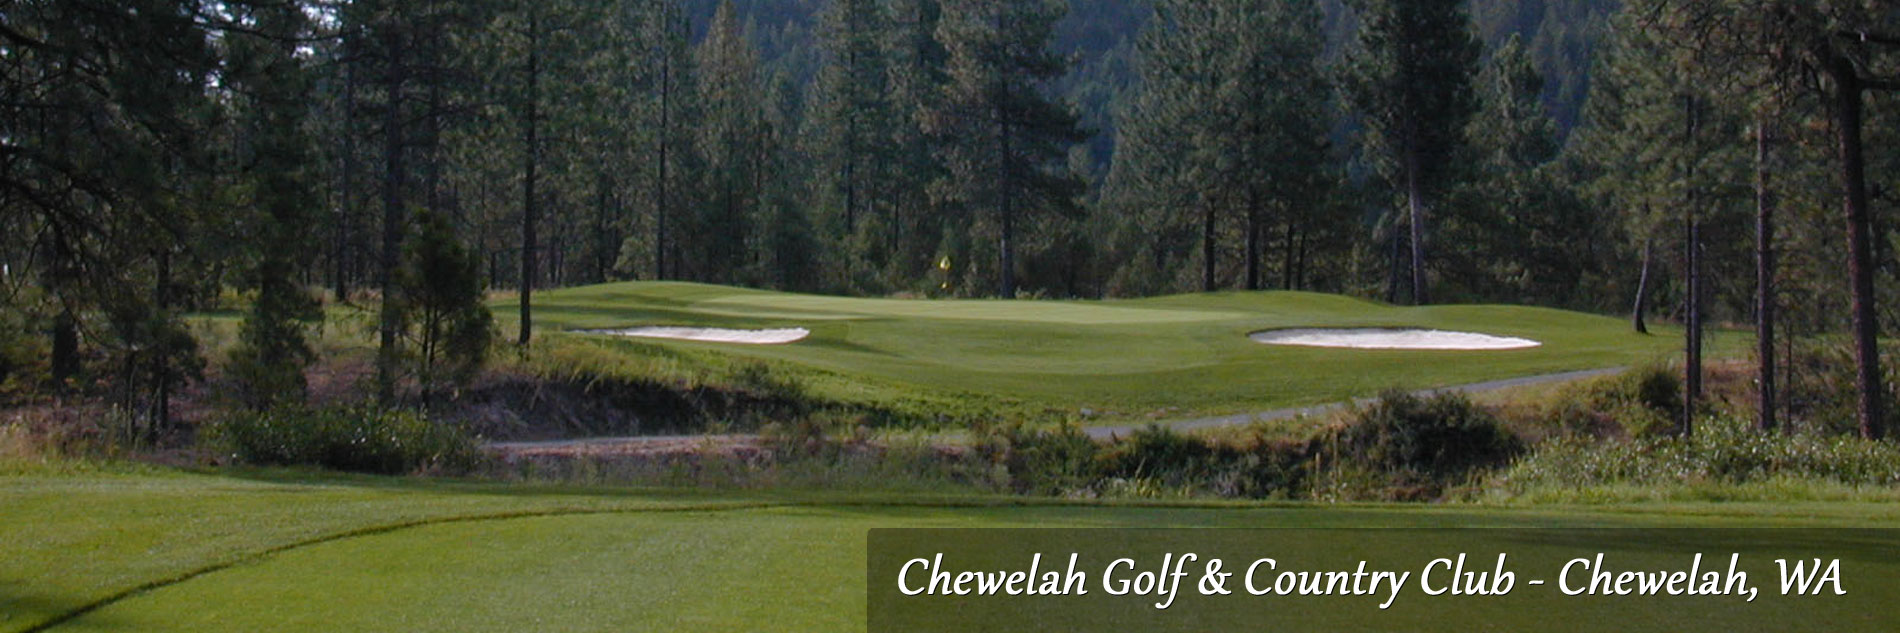 Chewelah Golf & Country Club